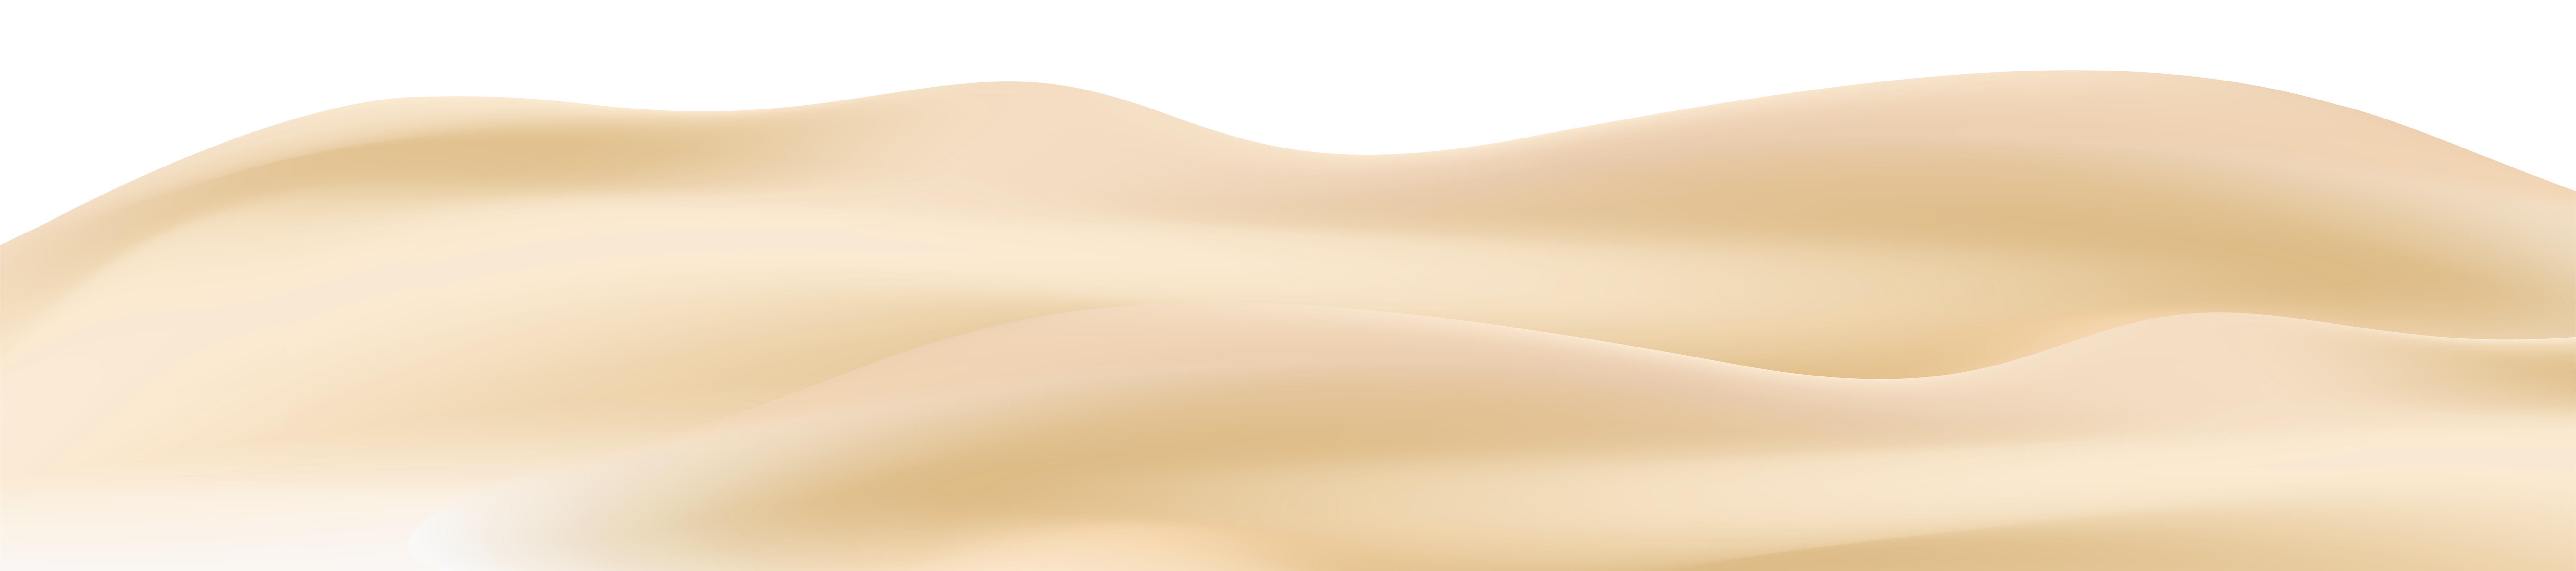 Sand texture clipart banner library 9+ Sand Clipart | ClipartLook banner library